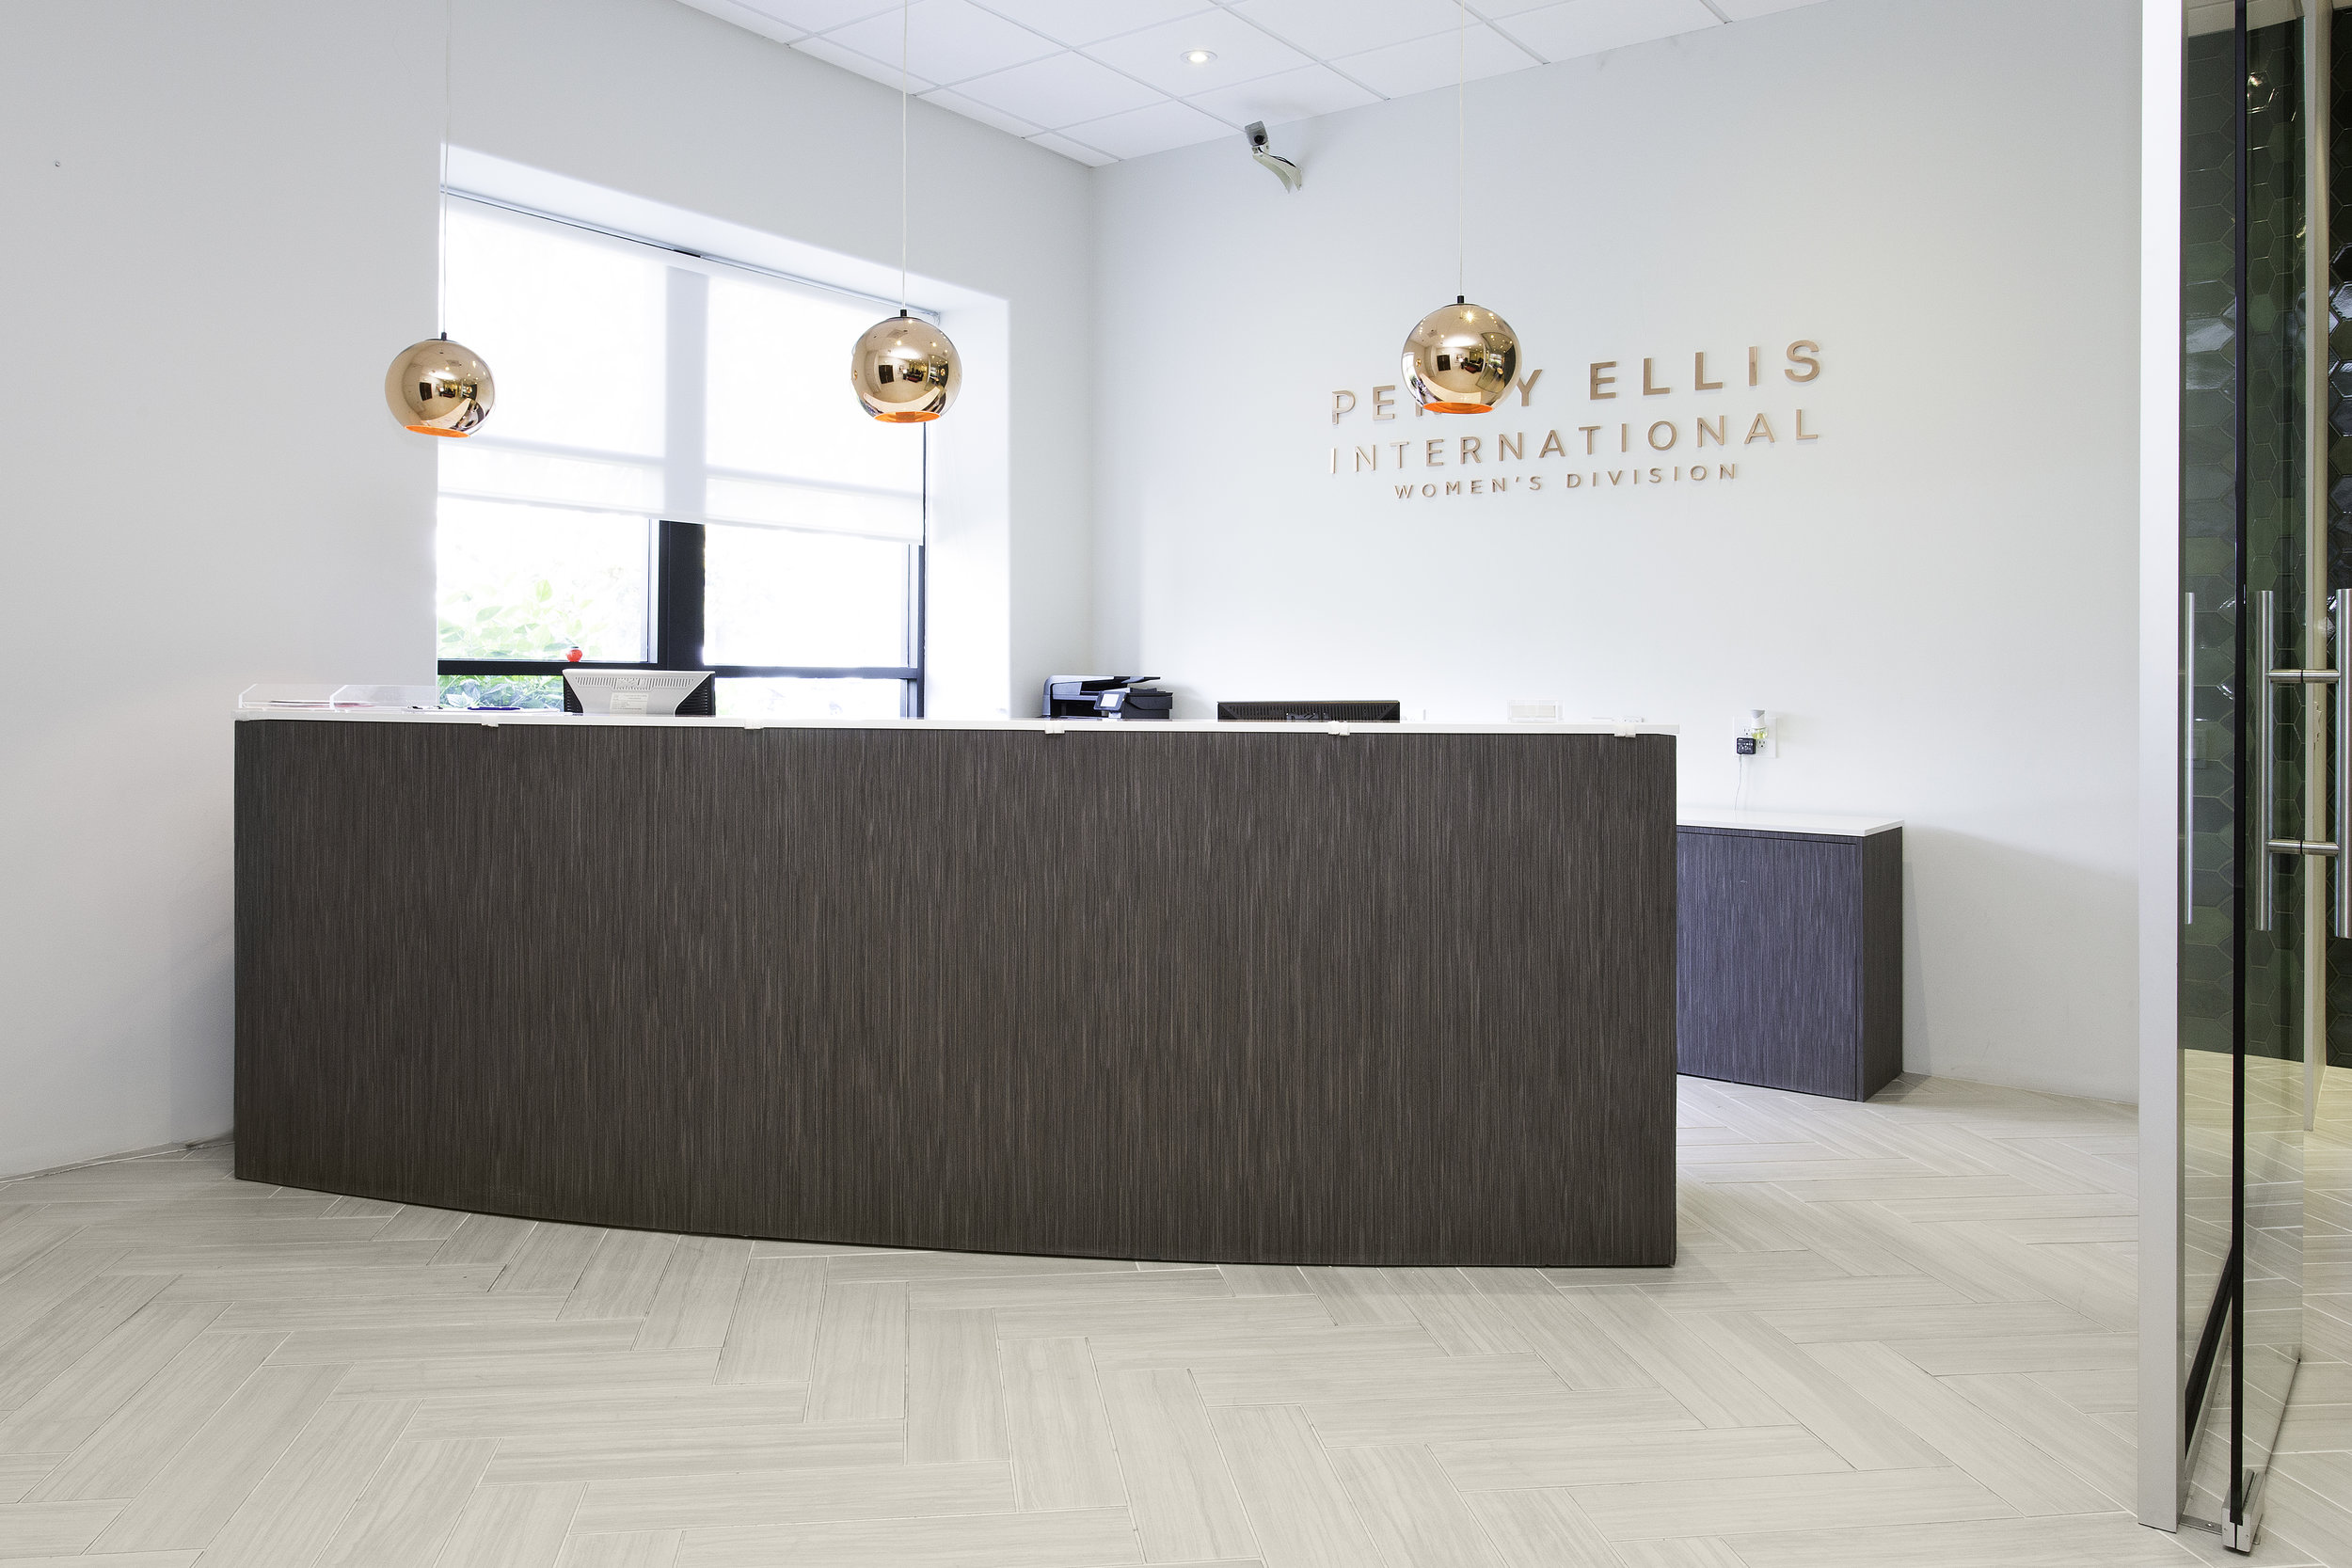 Front Desk/Reception Perry Ellis Los Angeles  Images courtesy of Perry Ellis International